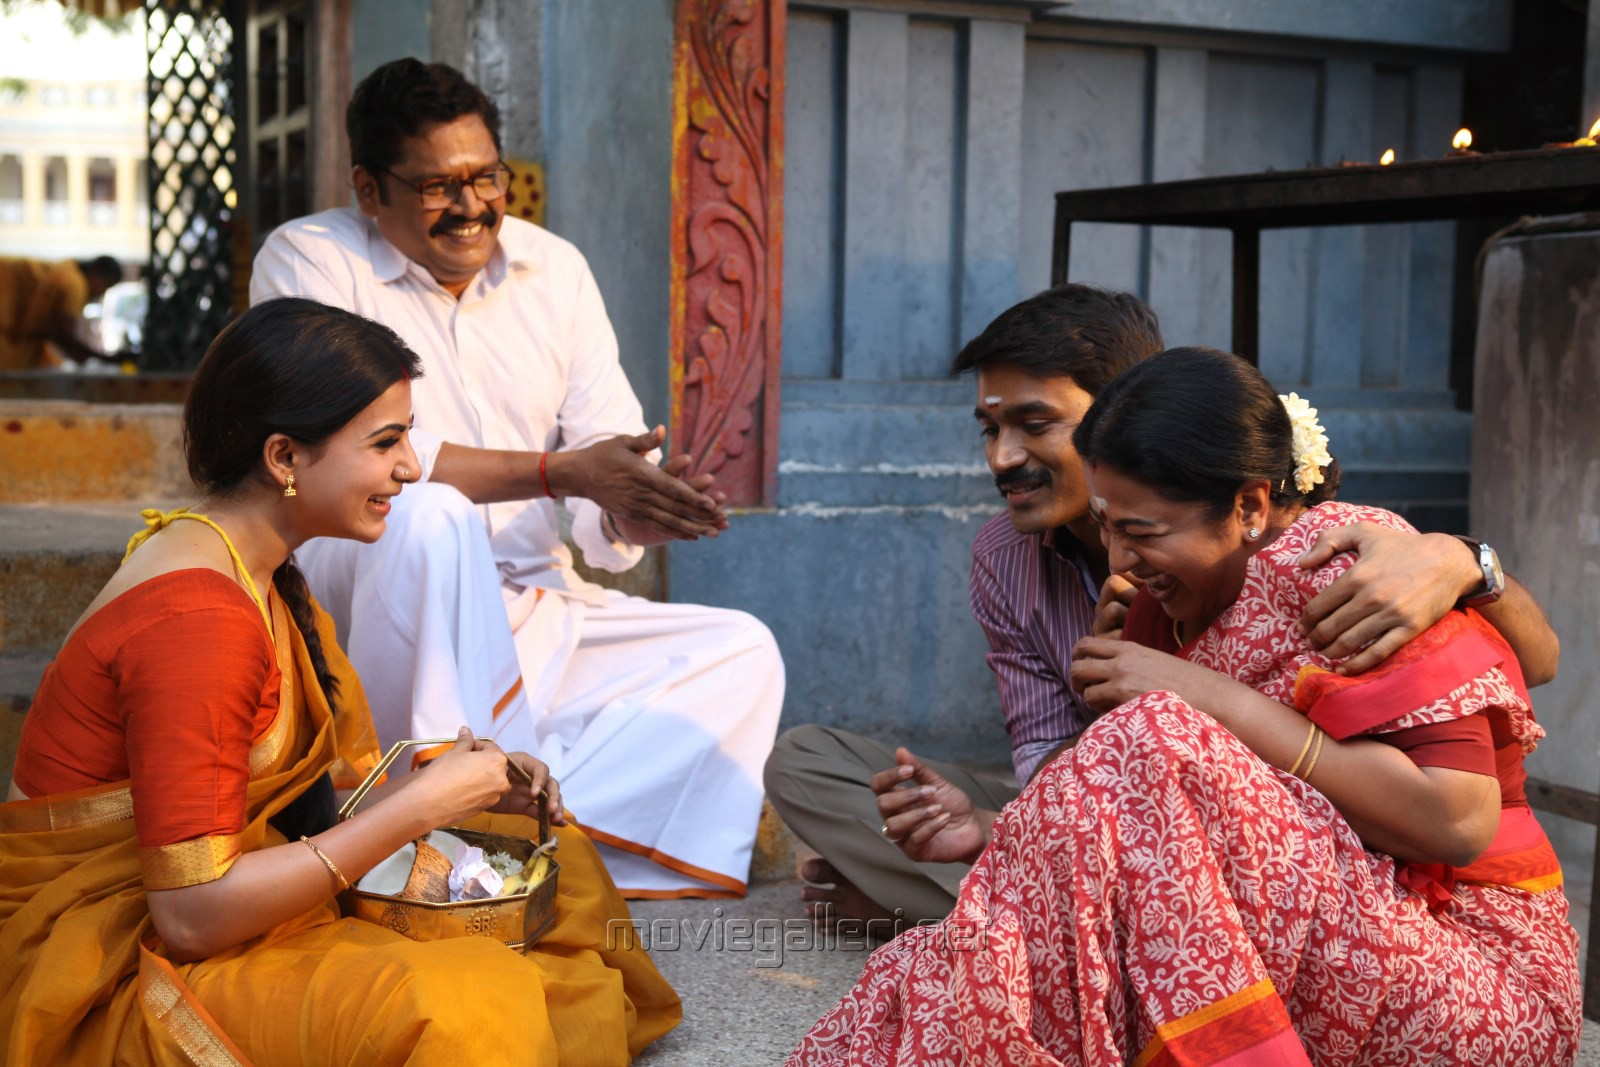 Samantha, Azhagam Perumal, Dhanush, Radhika in Thanga Magan Movie Stills